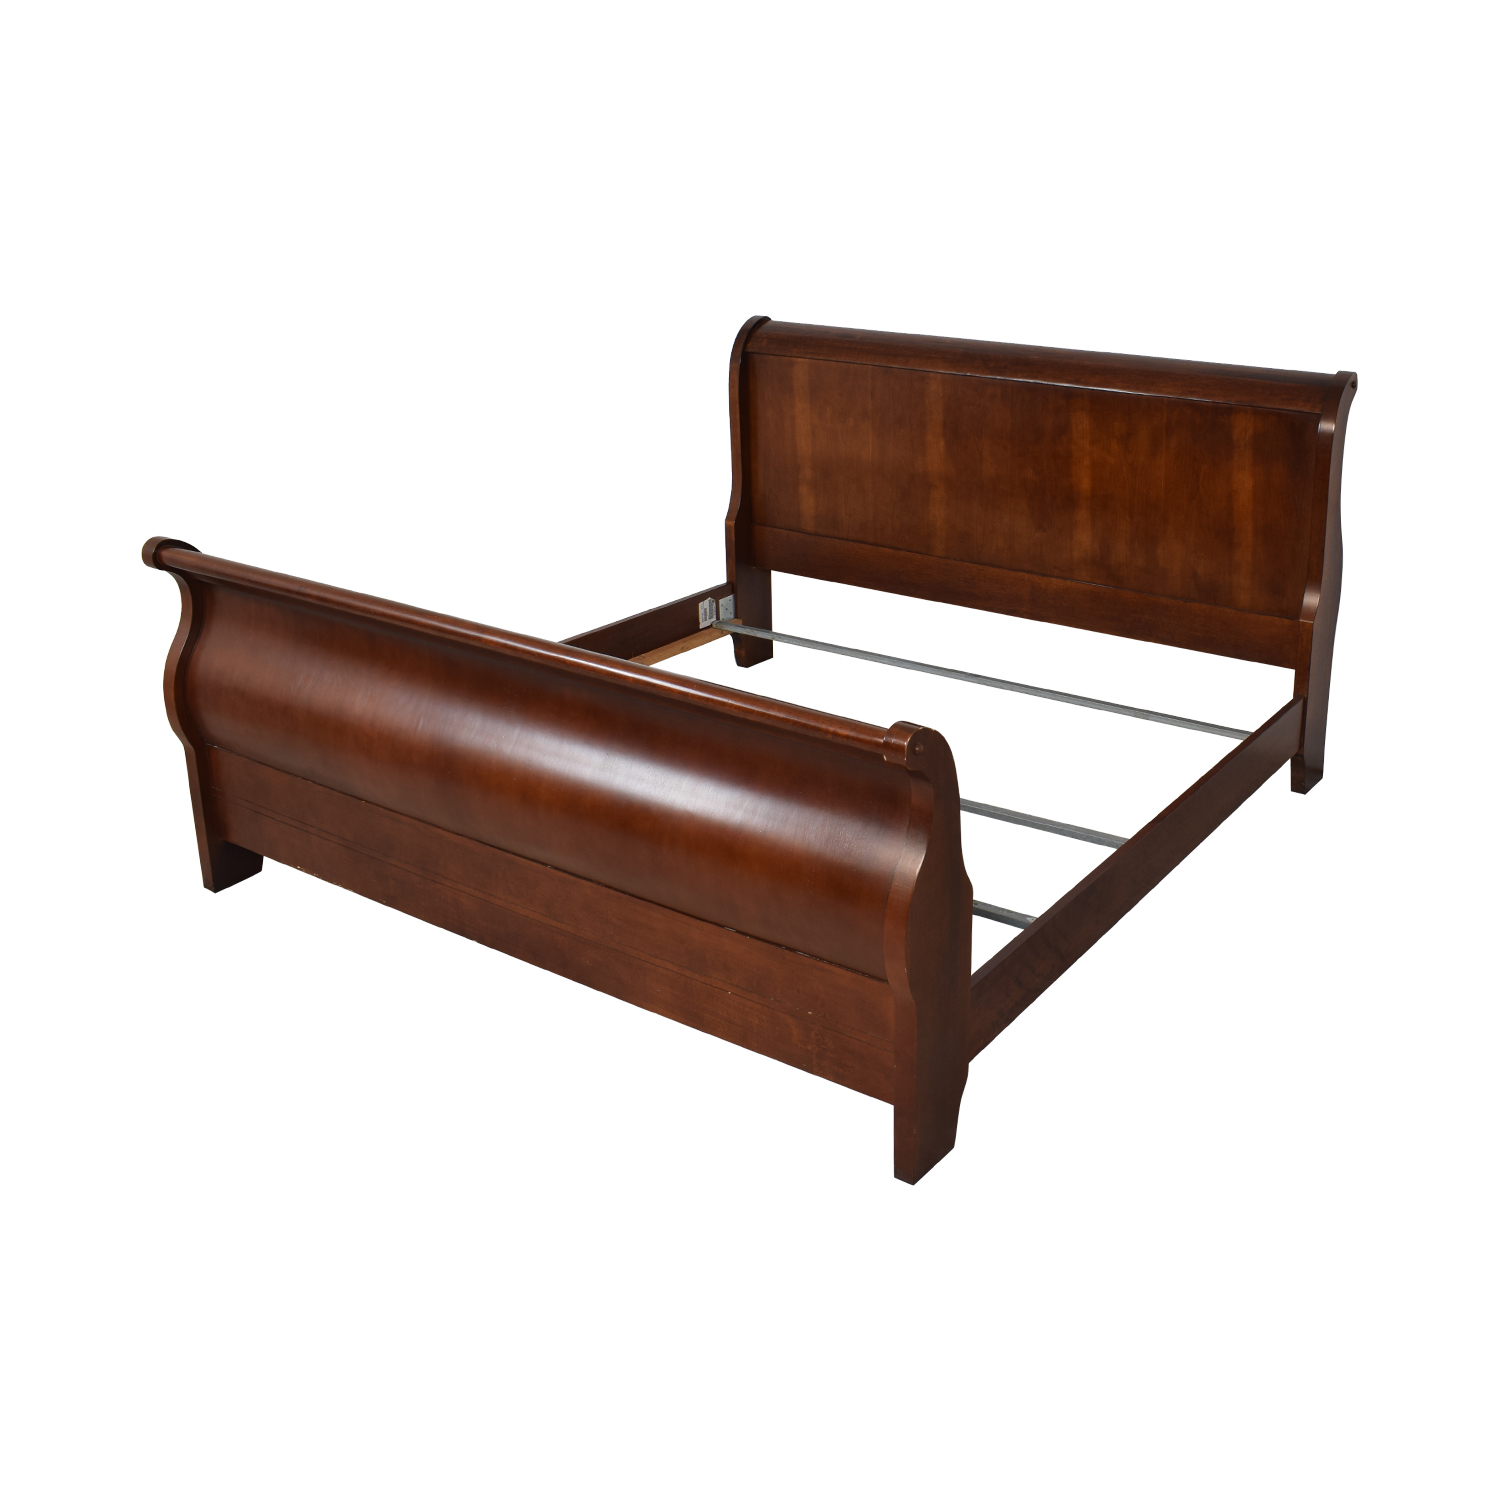 King Sleigh Bed / Bed Frames